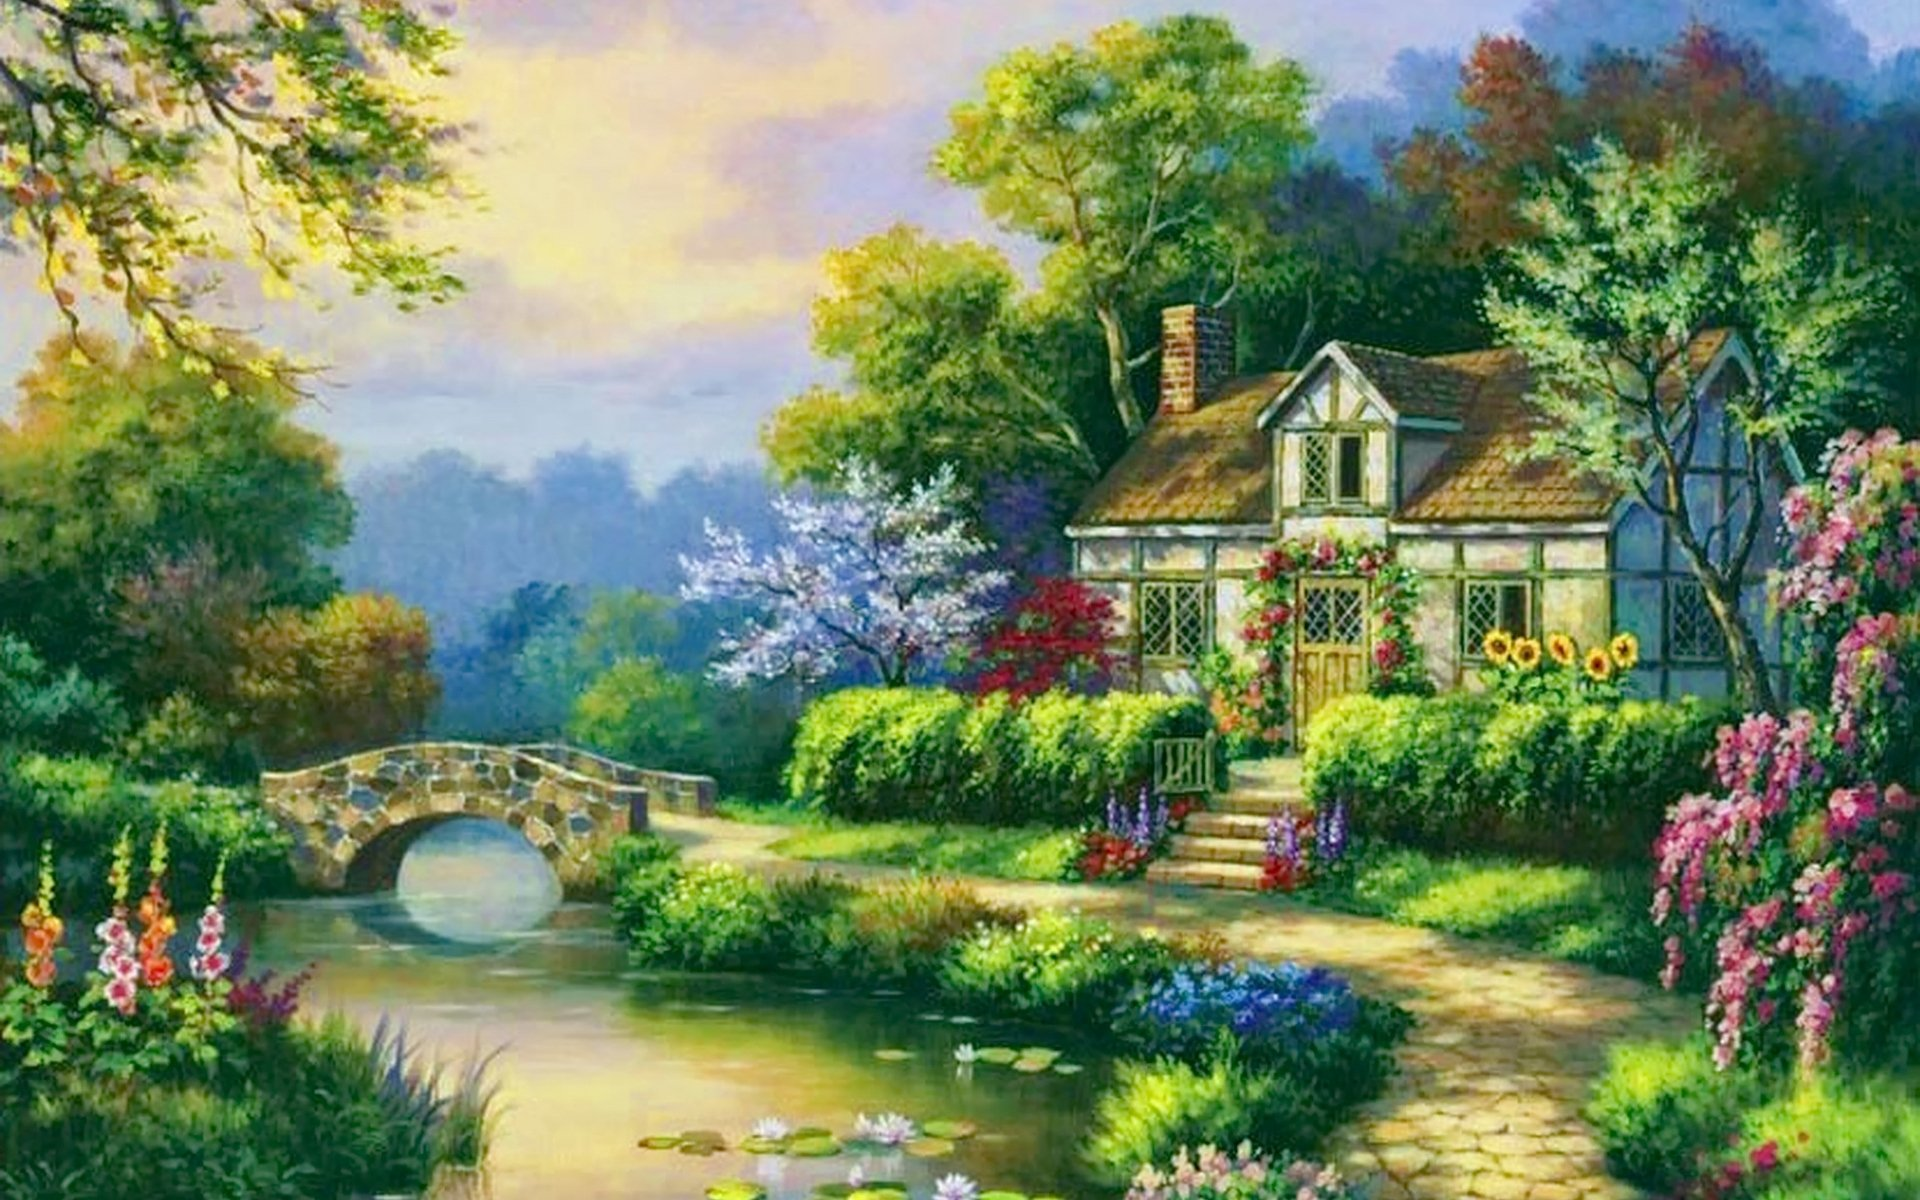 Wallpapers ID:423026